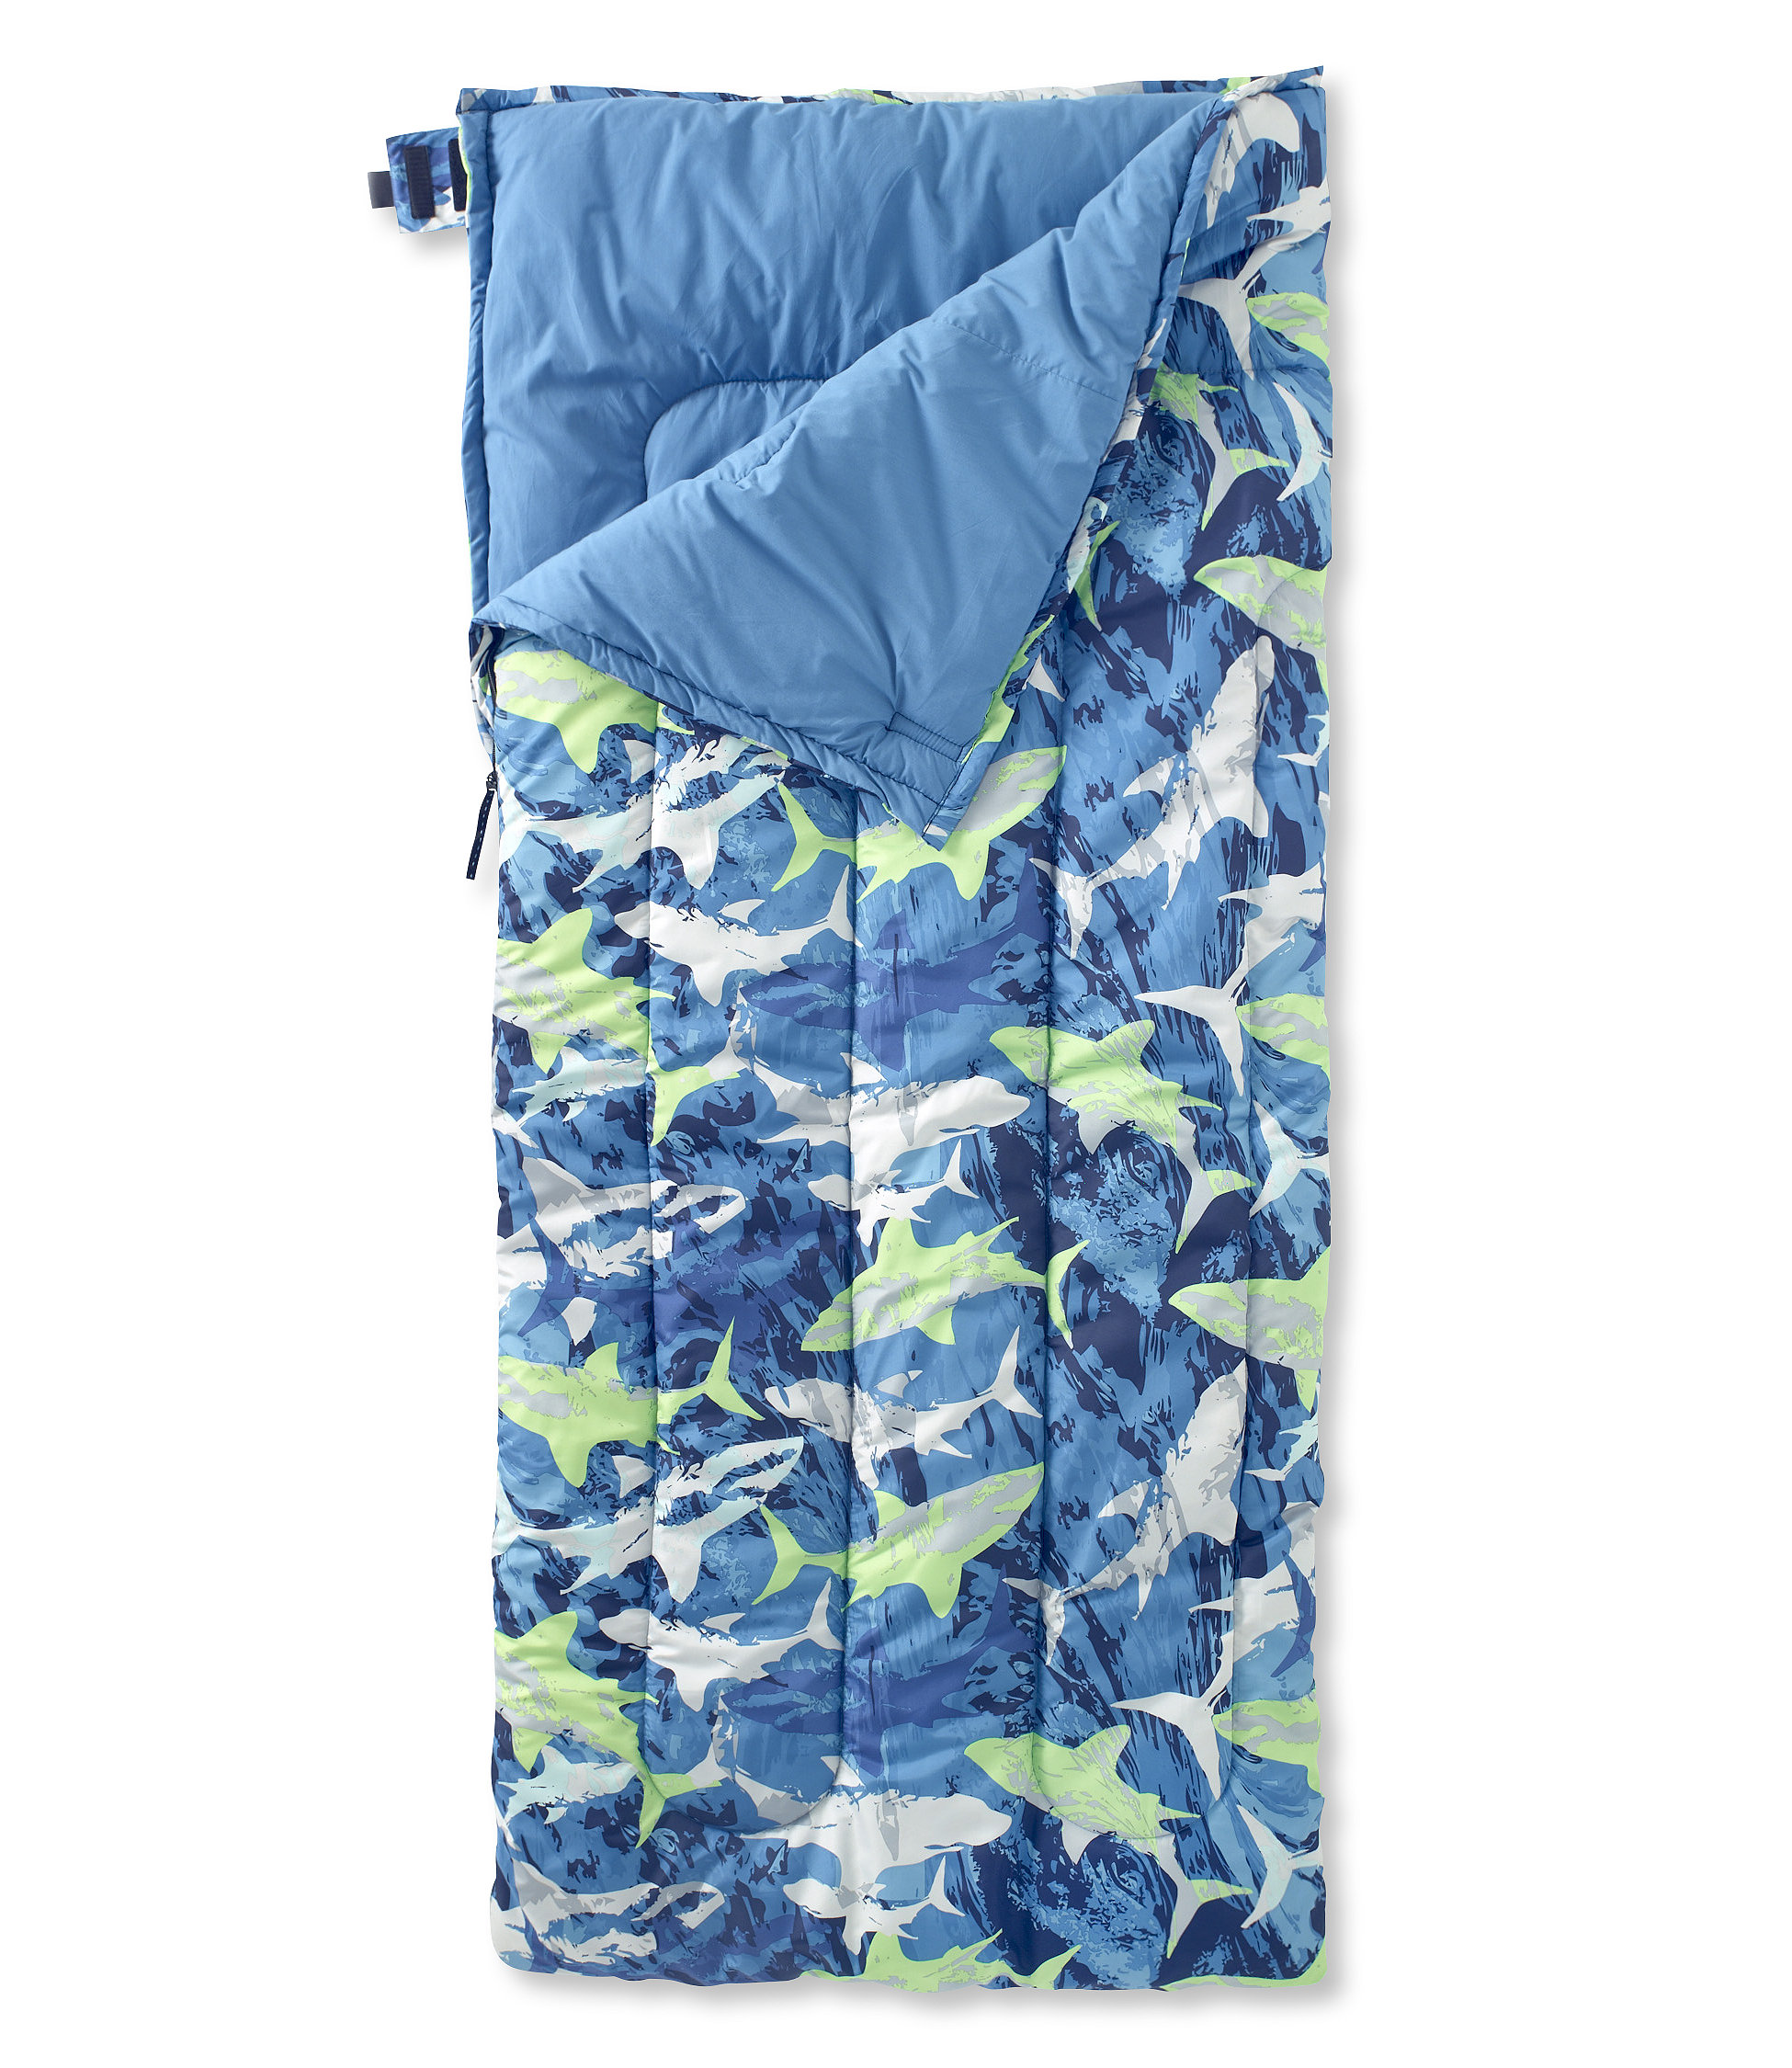 L.L.Bean Camp Sleeping Bag, Cotton-Blend-Lined Regular 40°